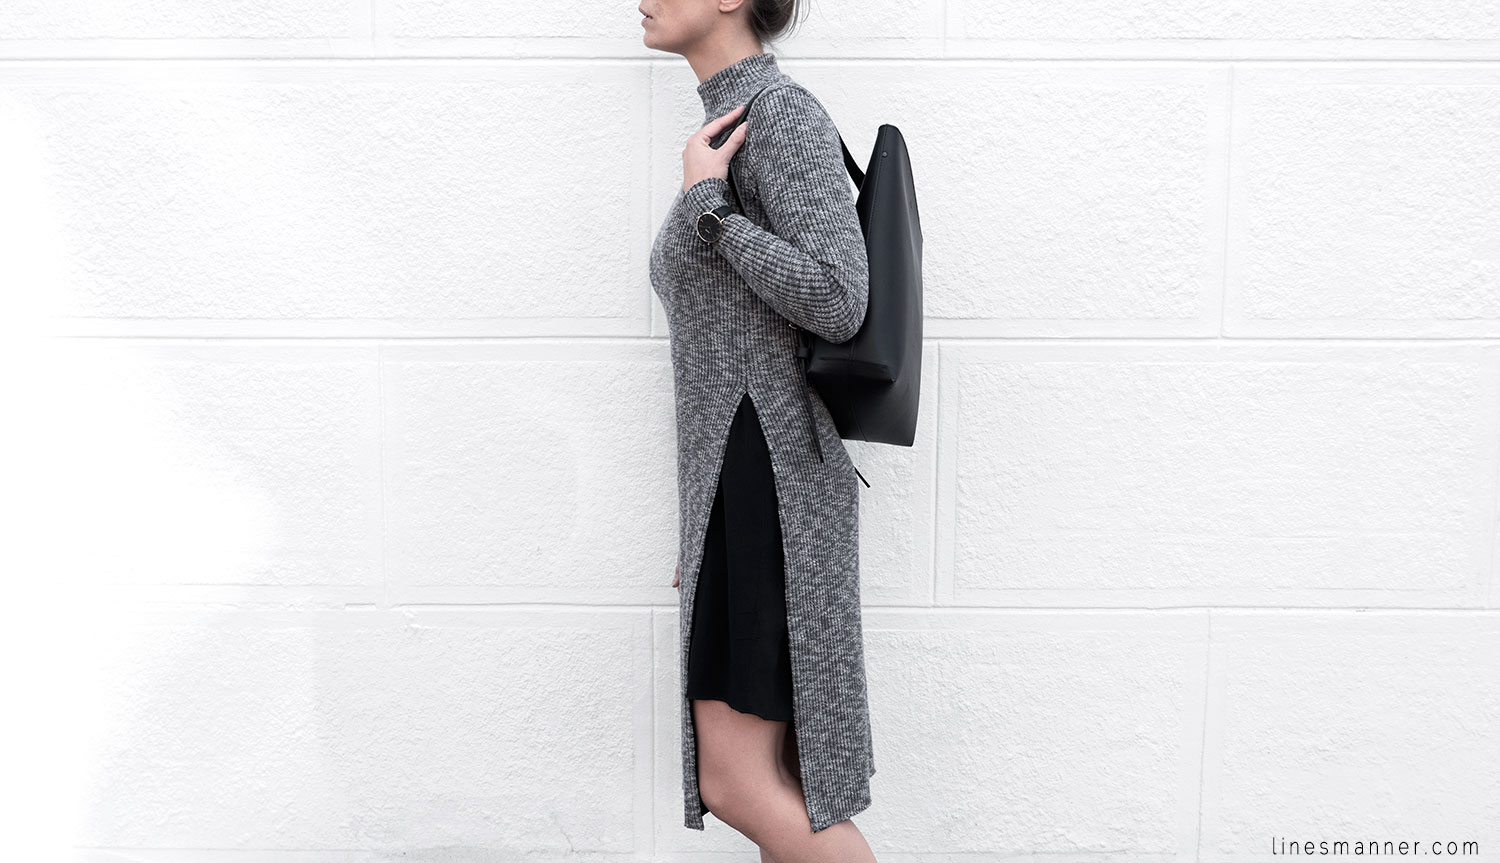 Lines-Manner-Remind-2015-Minimal-Essential-Outfit-Inspiration-Blog-Timeless-Year-Seasons-Details-Travel-Fashion-Versatile-Clean-Sleek-Quality-40